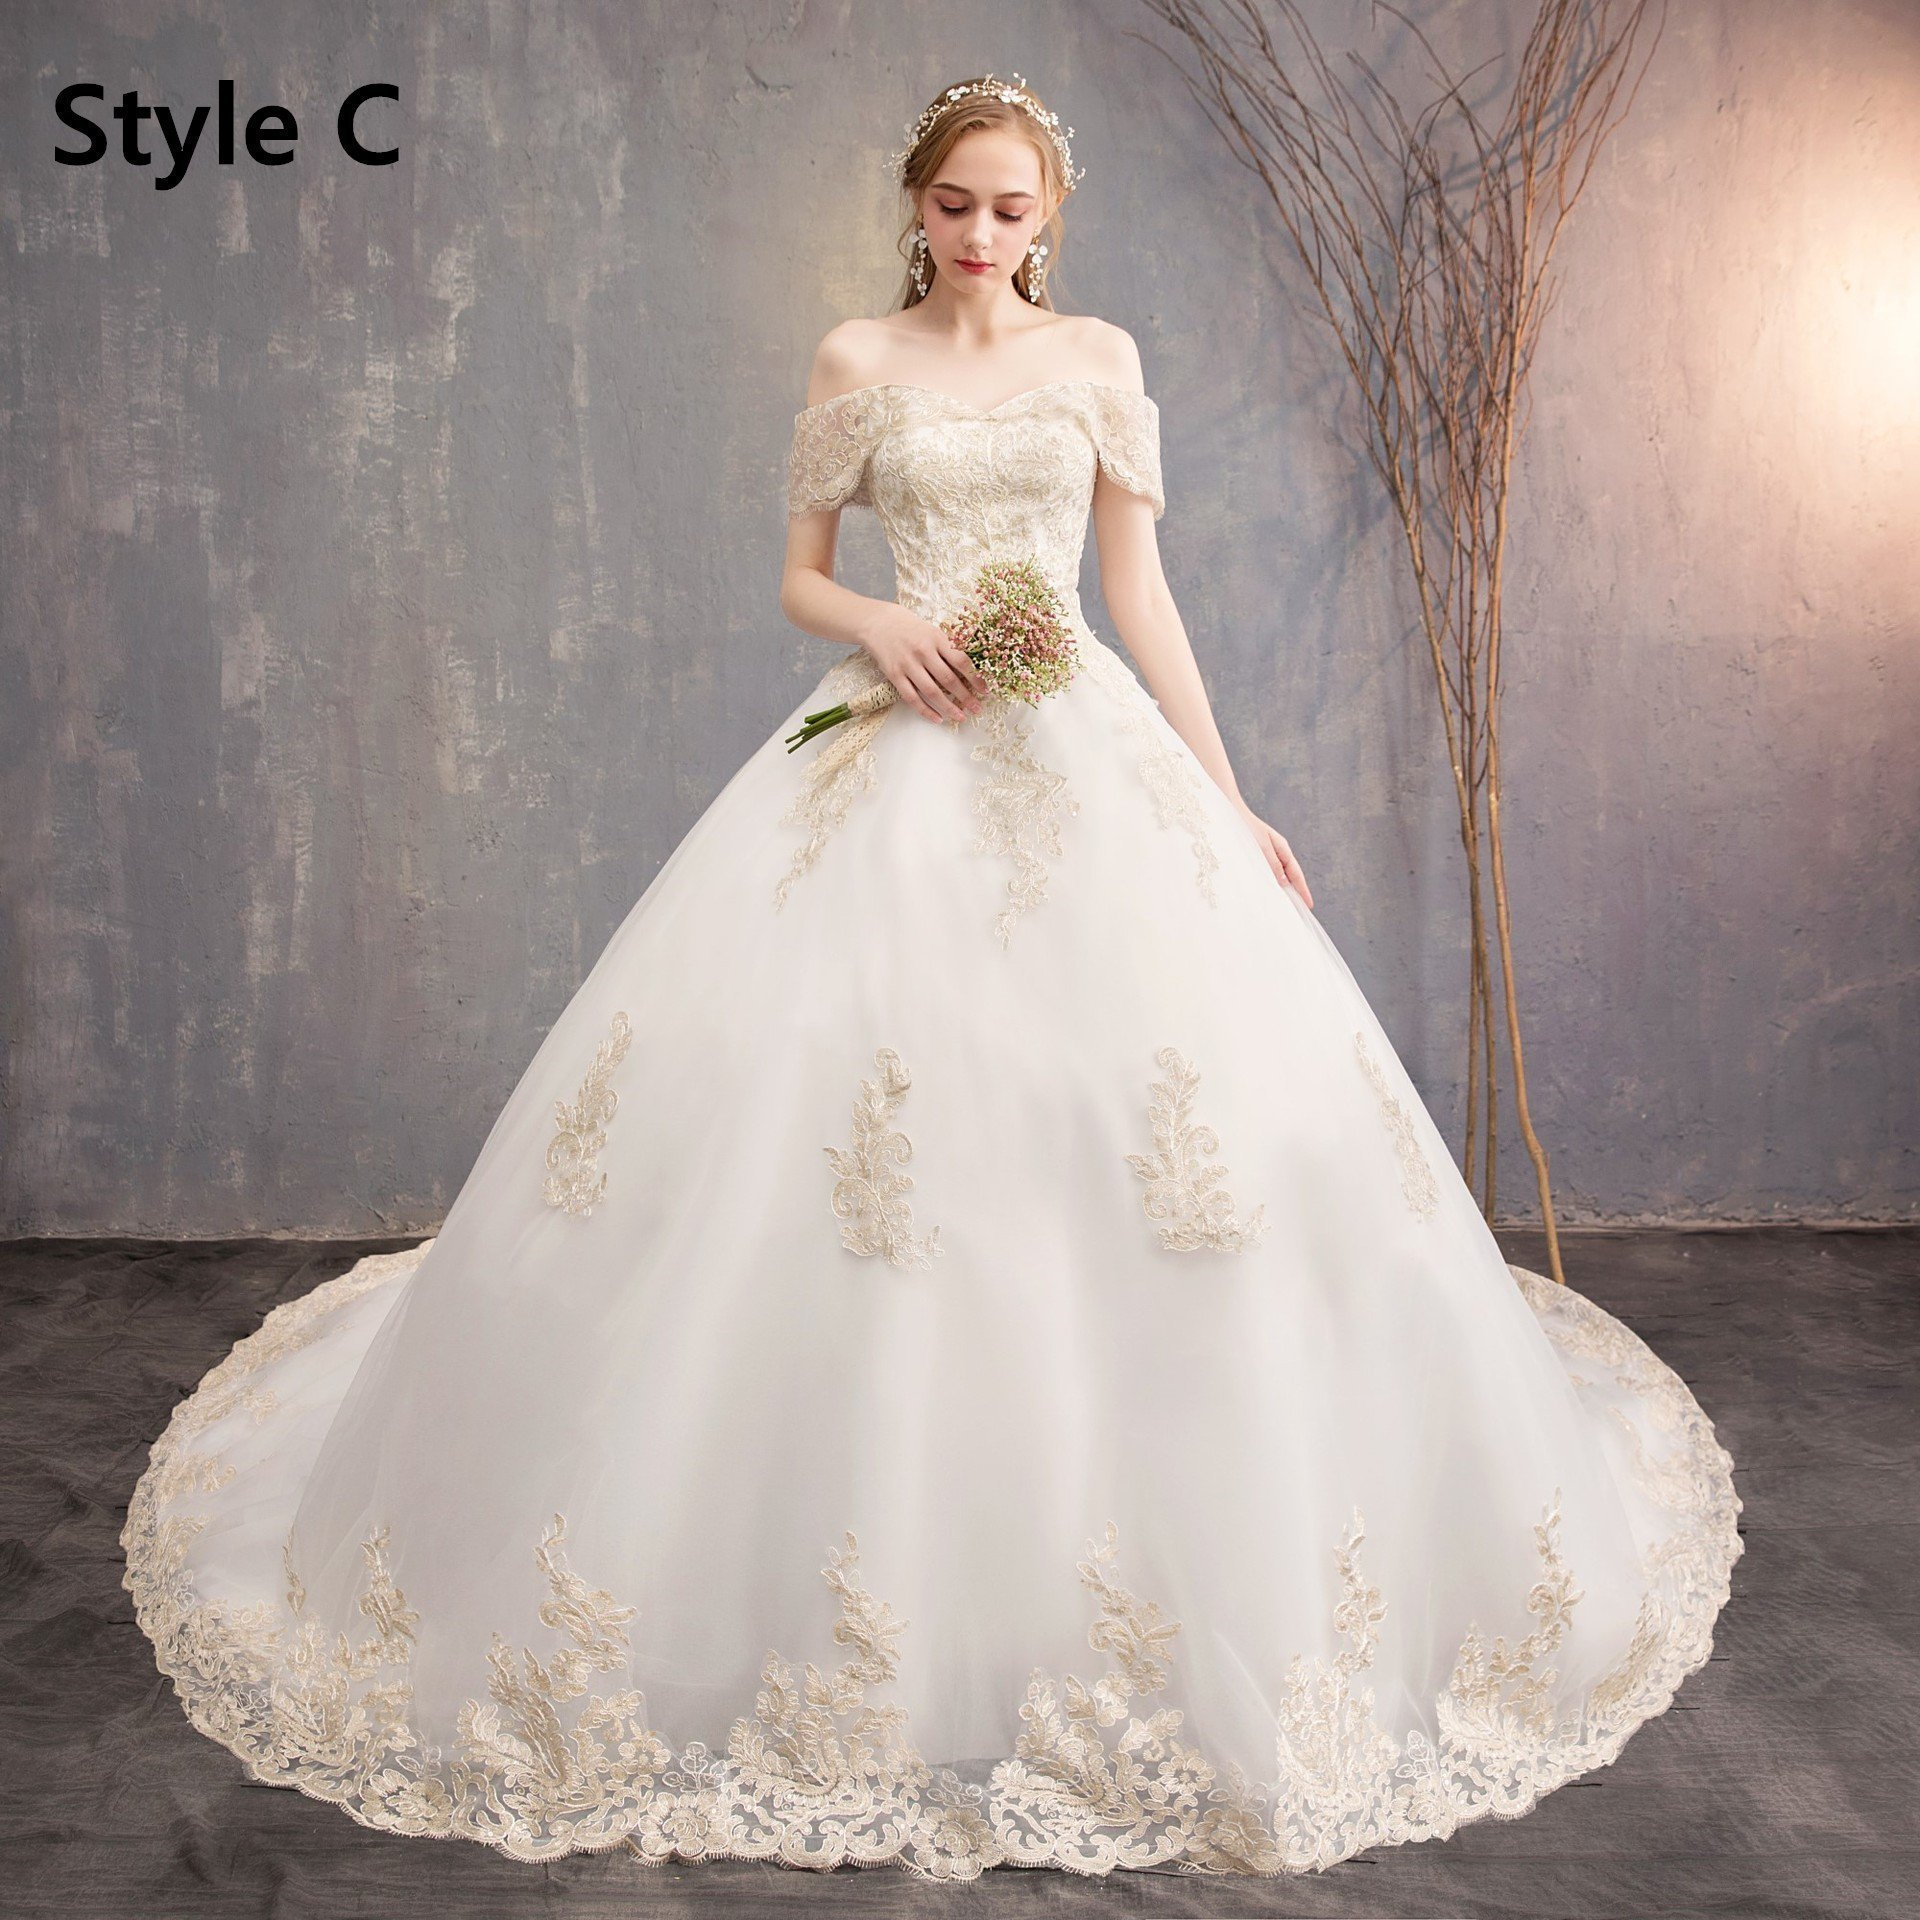 Best Wedding Dresses Lace Dresses Ankara Lace Dress Styles Occasion Dresses Uk White Lace Fitted Dress Wedding Dress With Detachable Skirt Affordable Wedding Dresses Online Indian Wedding Attire For Groom